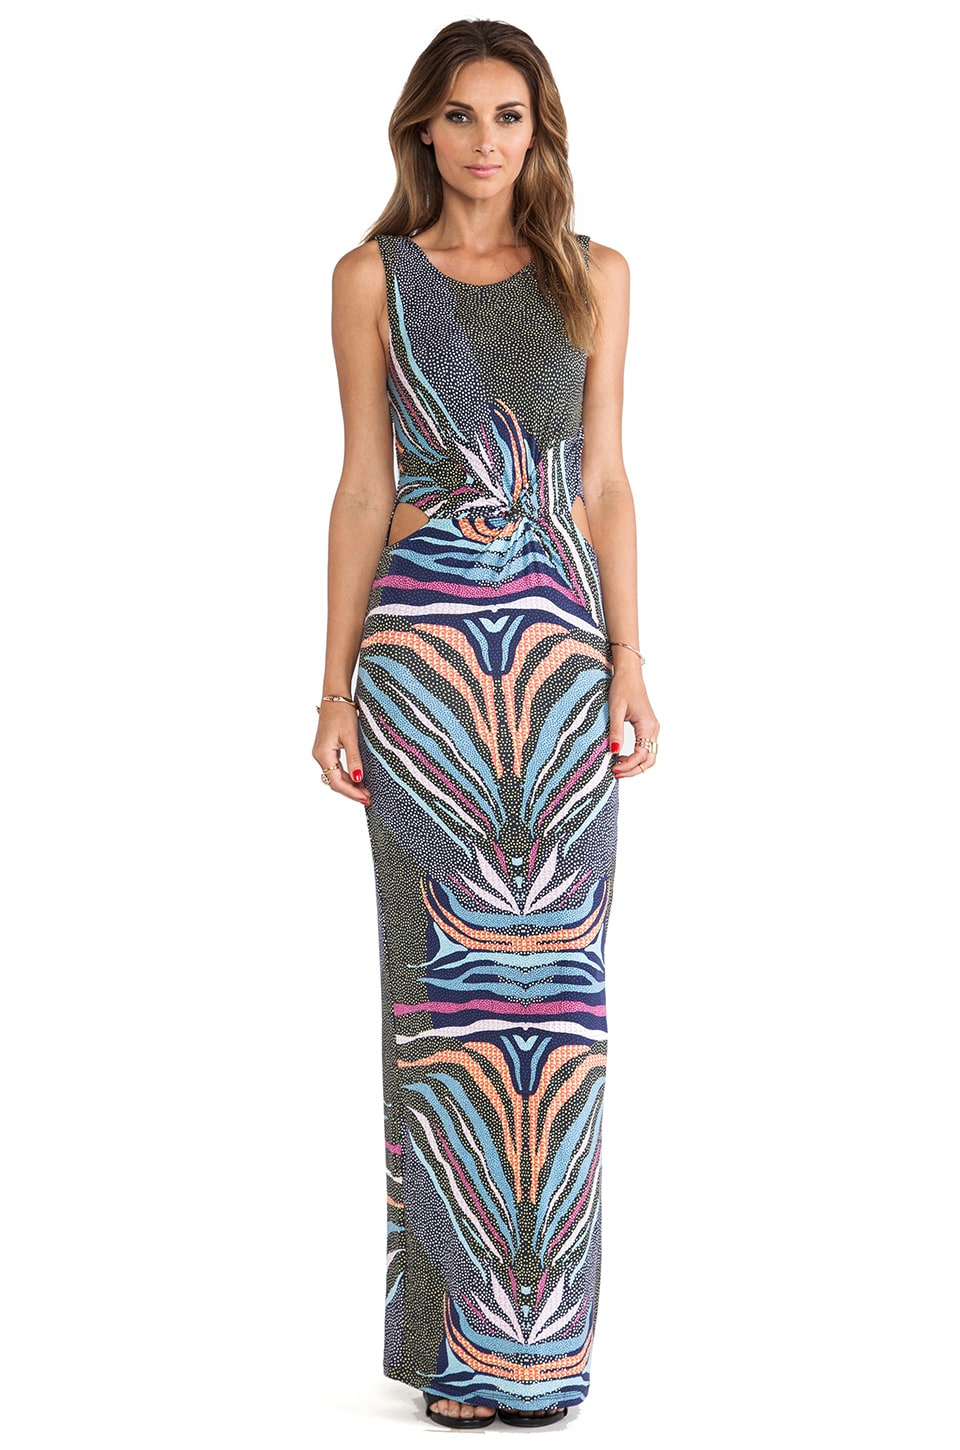 Mara Hoffman Twist Maxi Dress in Phoenix Black